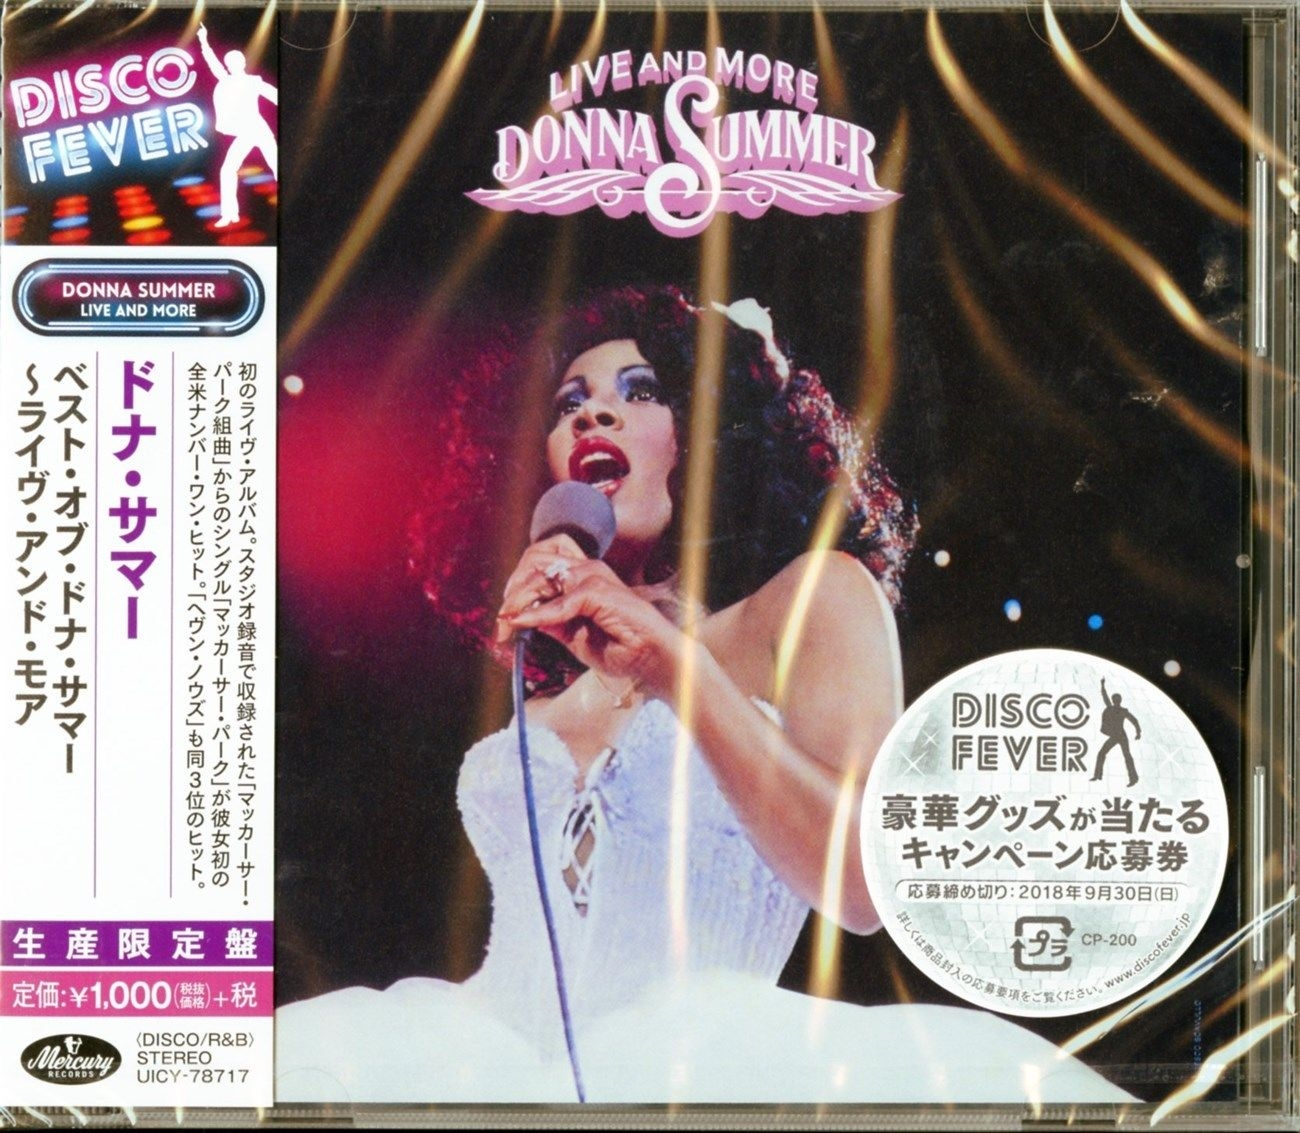 Donna Summer - Live and More Ltd  CD